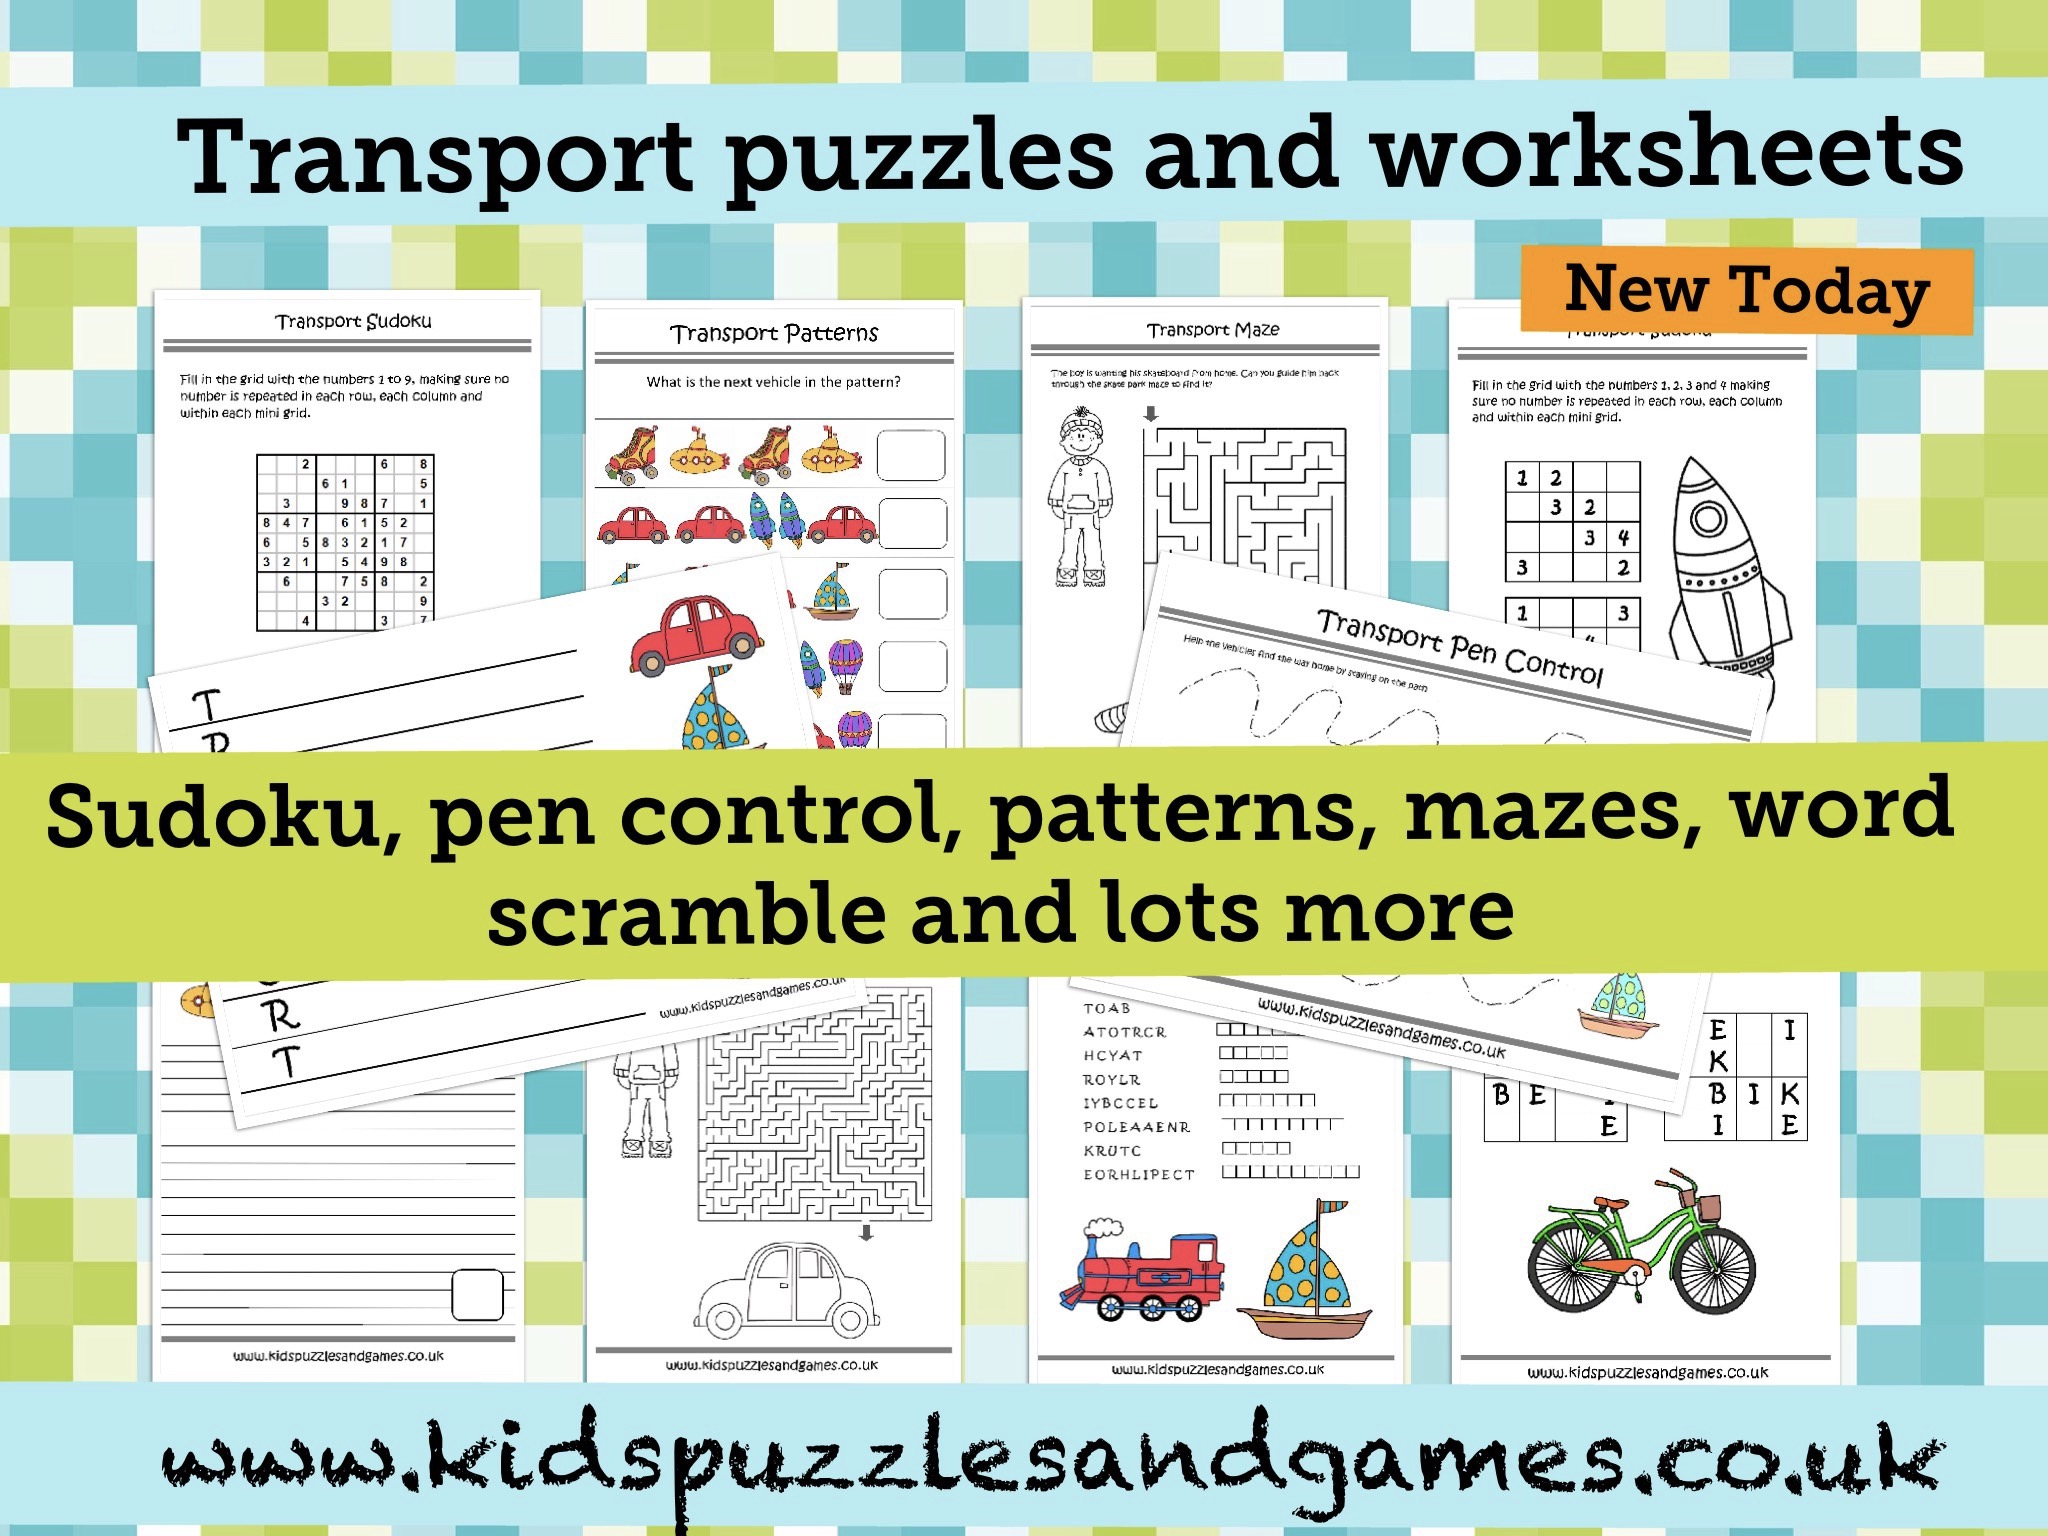 Welcome To Kids Puzzles And Games - Printable Puzzles Ks2